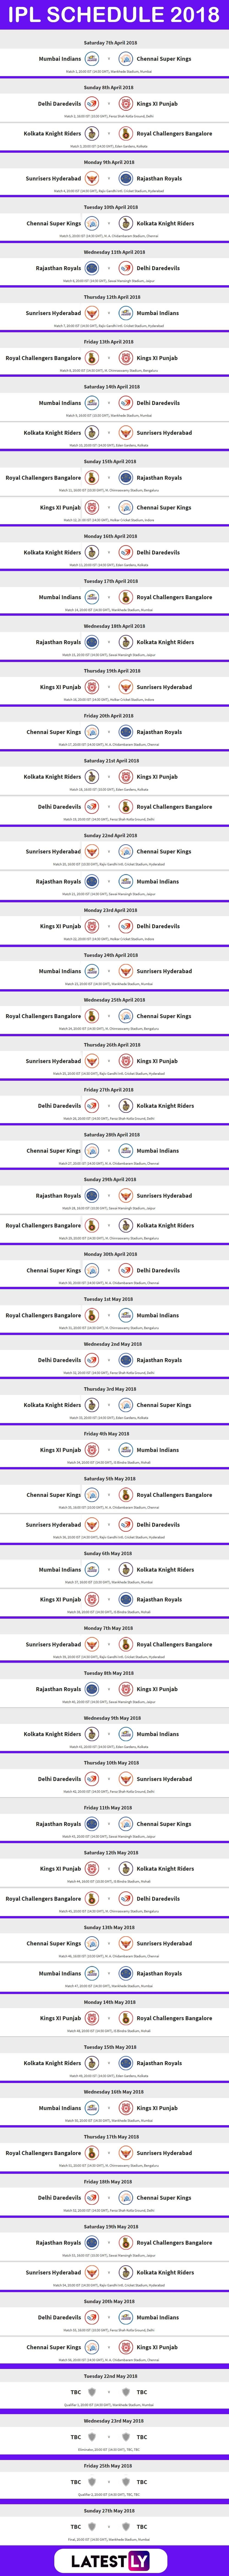 2018 Indian Premier League Full Schedule & Time Table